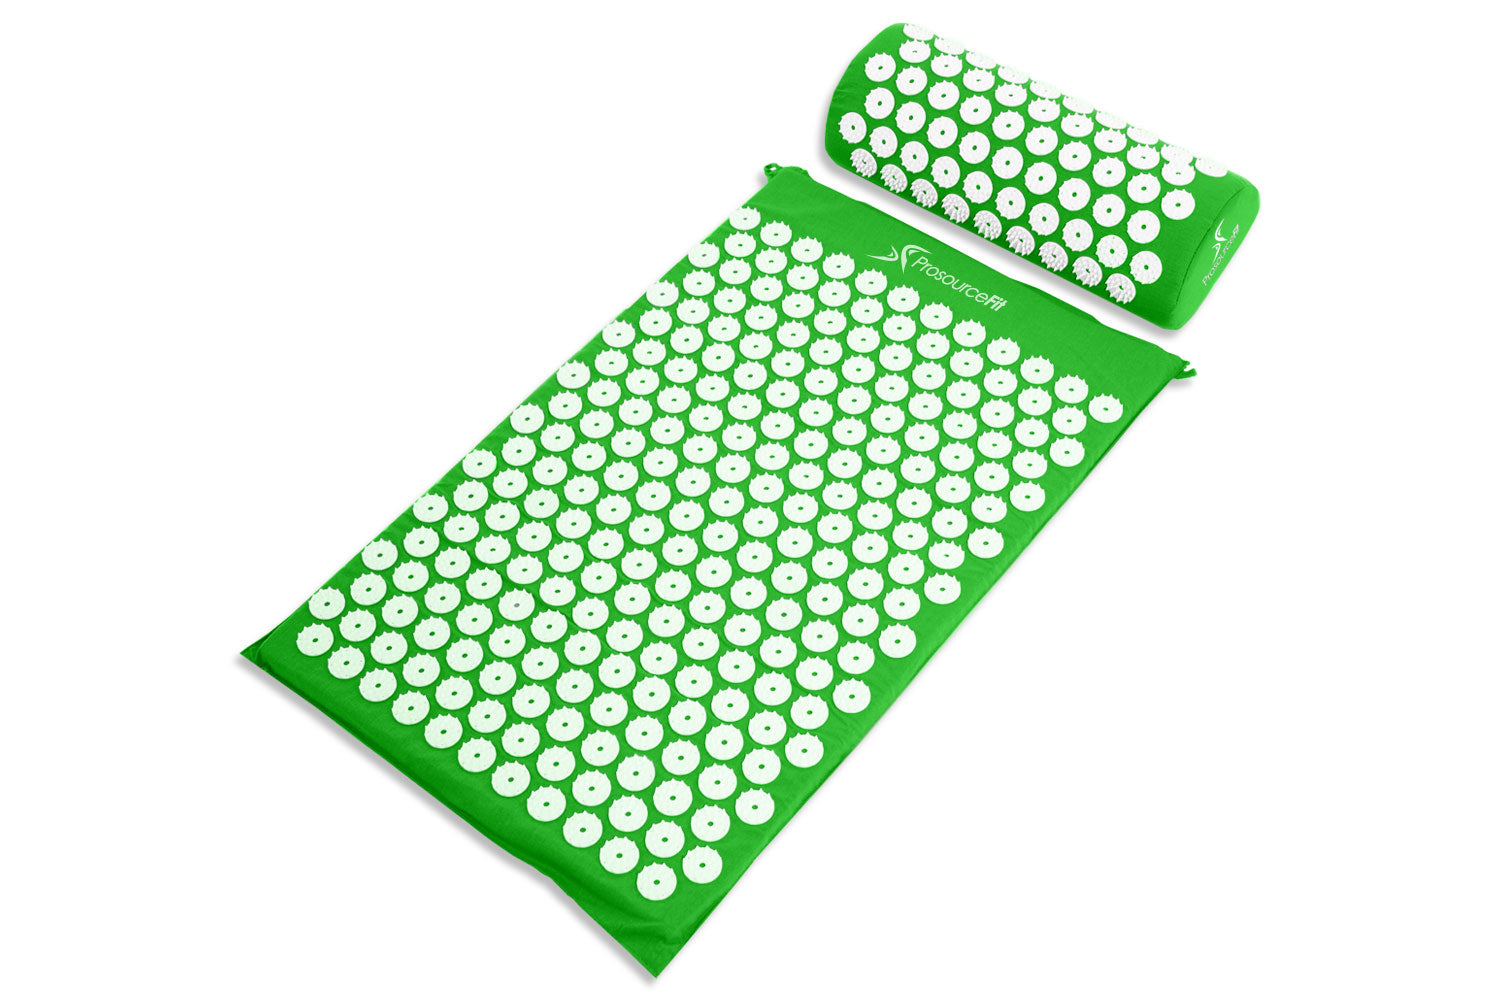 Green Acupressure Mat and Pillow Set